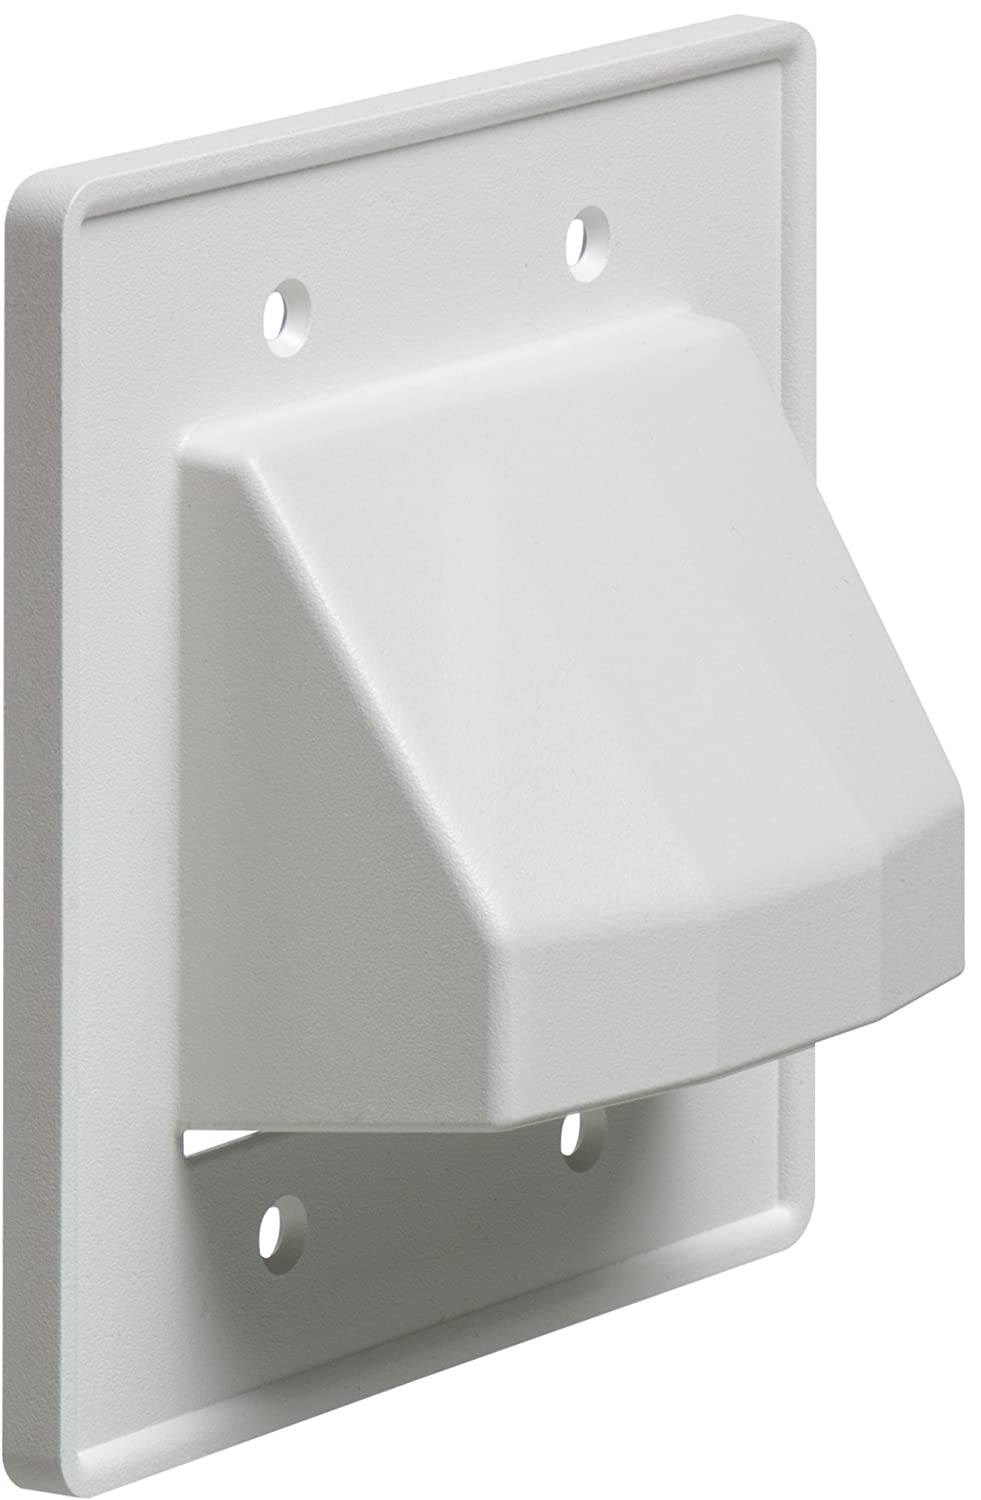 Arlington Ce1 10 Recessed Low Voltage Cable Plate 1 Wiring Contractors Gang White Pack Home Improvement